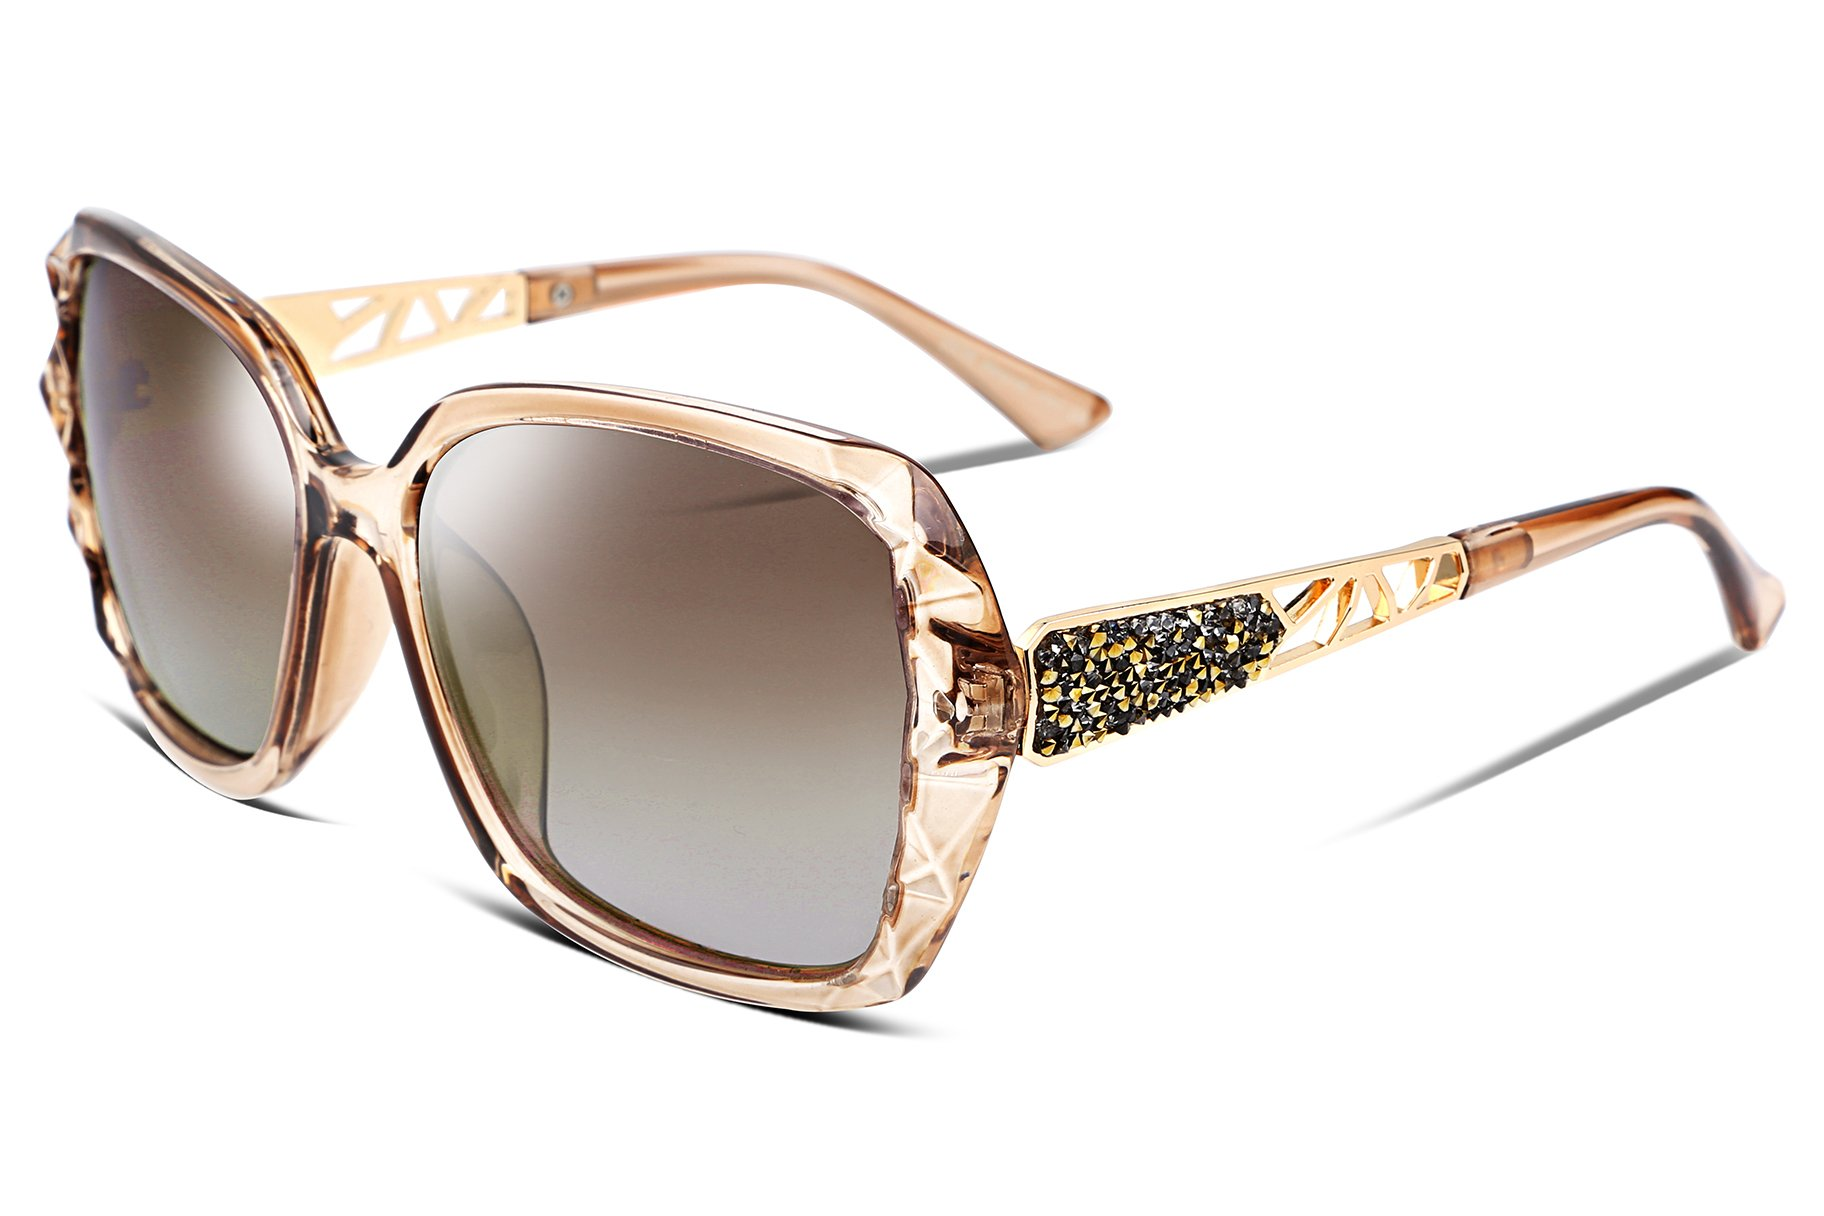 210dd68dc60 FEISEDY Classic Polarized Women Sunglasses Sparkling Composite Frame B2289  product image